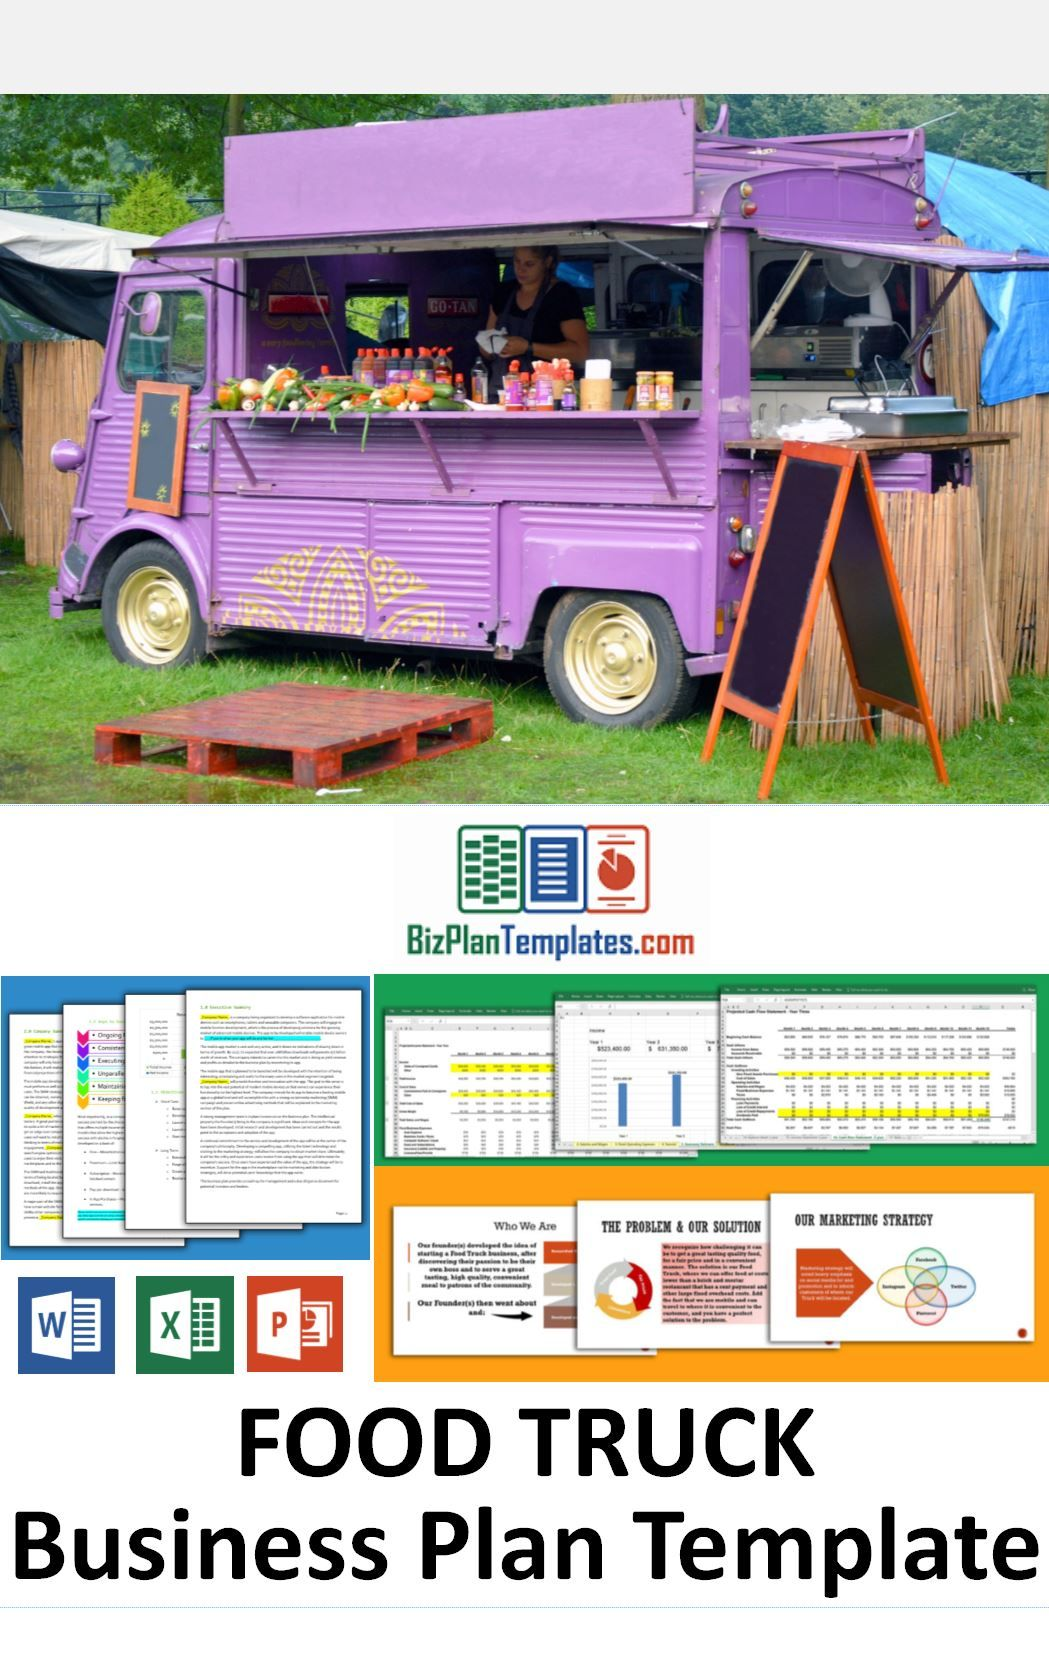 Food Truck Business Plan Template Sample With Financial